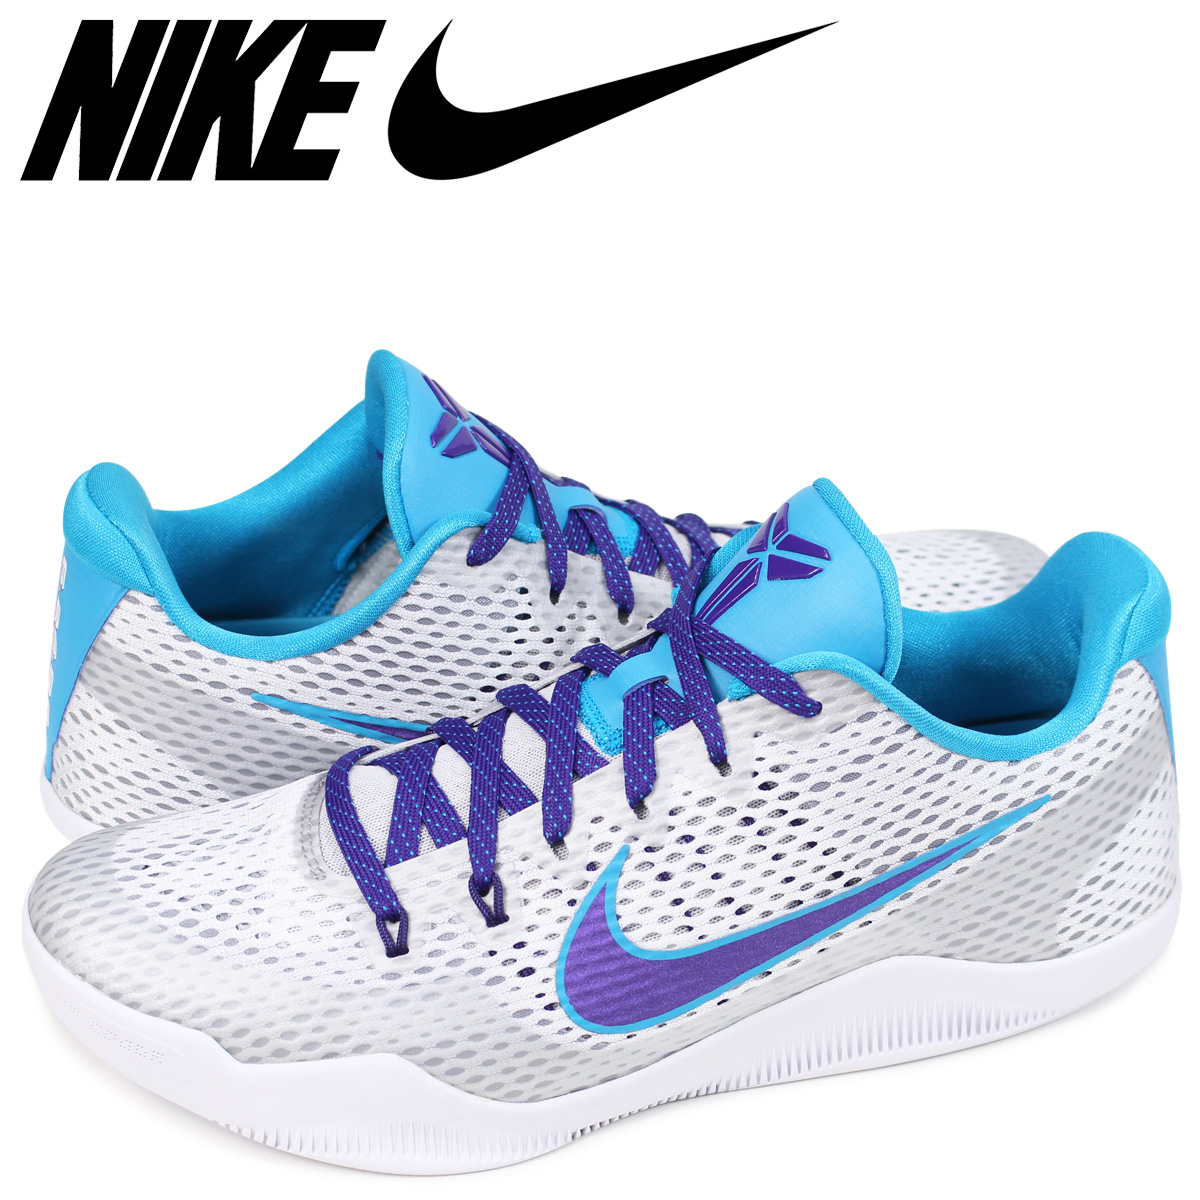 6613f9ce82b Whats up Sports  NIKE KOBE 11 HORNETS DRAFT DAY Nike Corby 11 ...